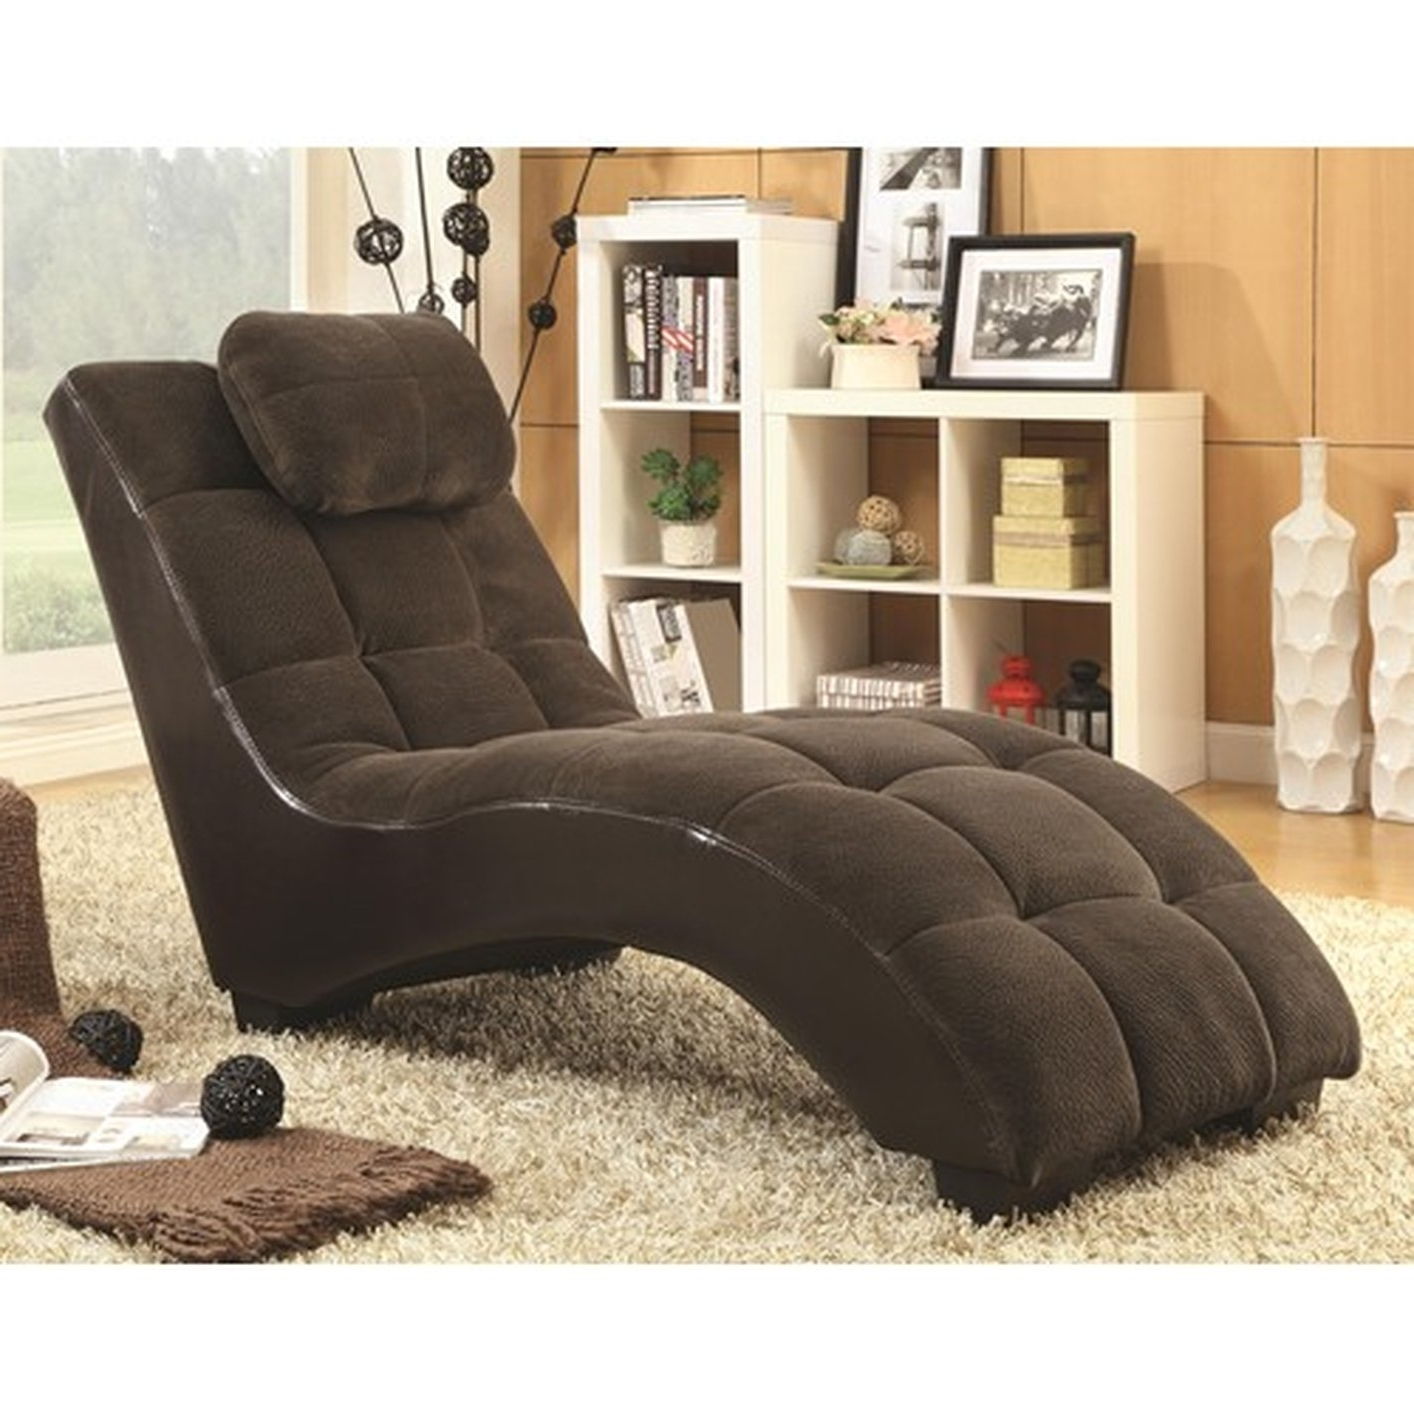 Fabric Chaise Lounge Chairs In Widely Used Brown Fabric Chaise Lounge – Steal A Sofa Furniture Outlet Los (View 8 of 15)